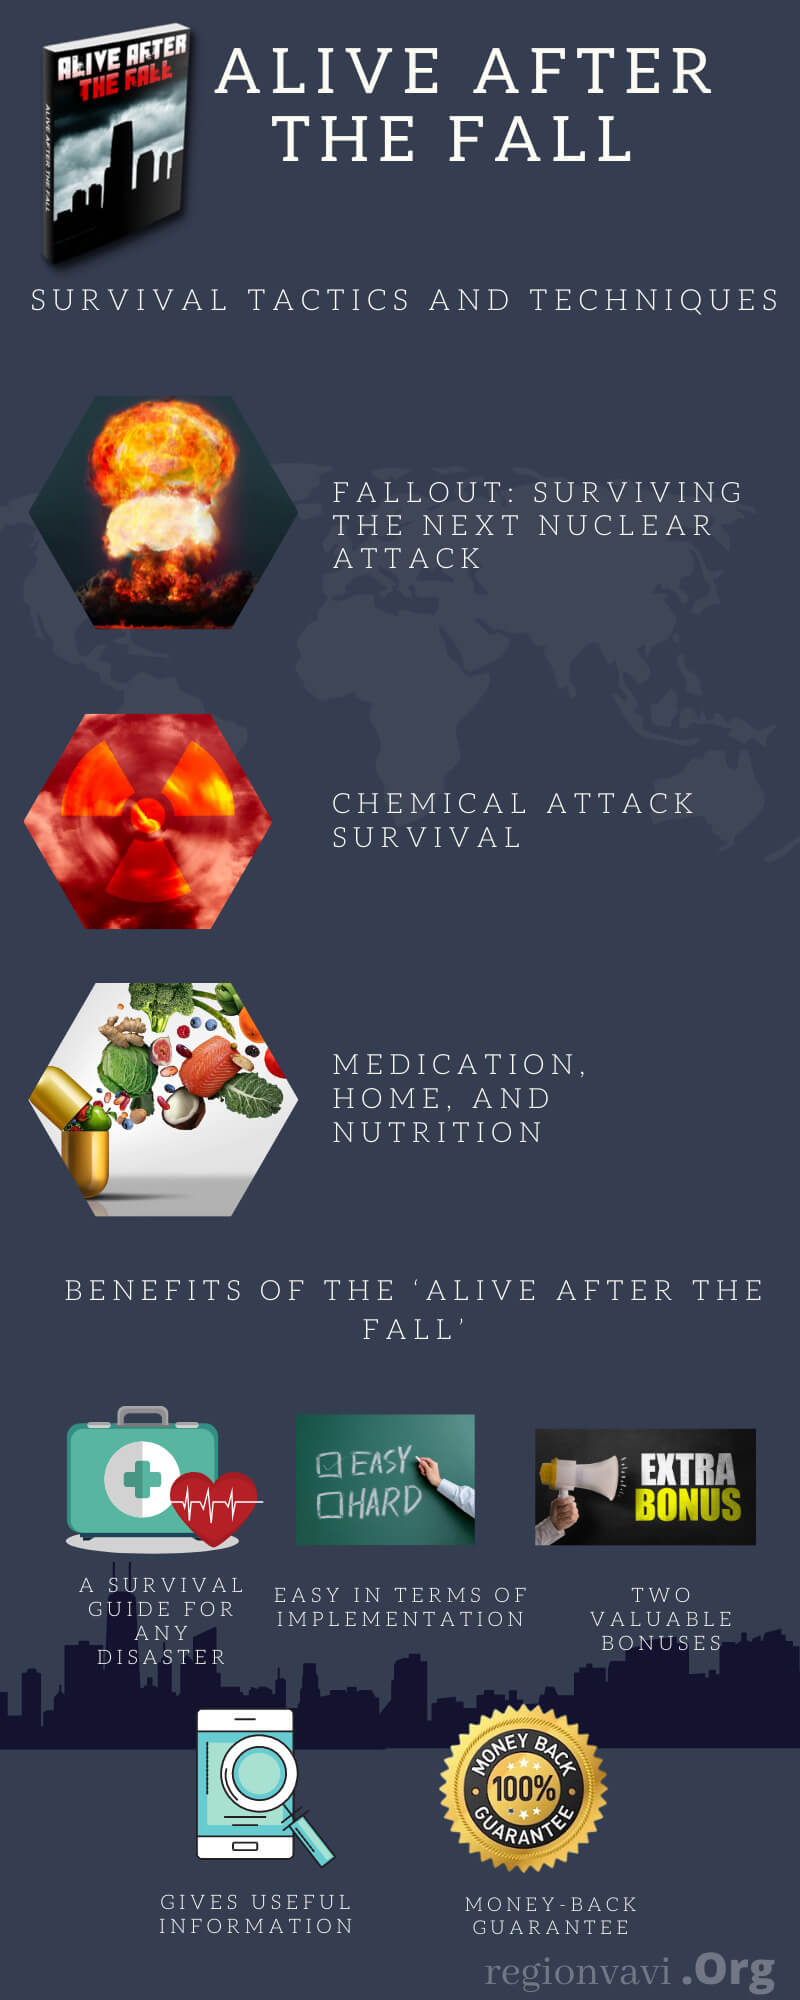 Alive After The Fall Survival Tactics and Techniques